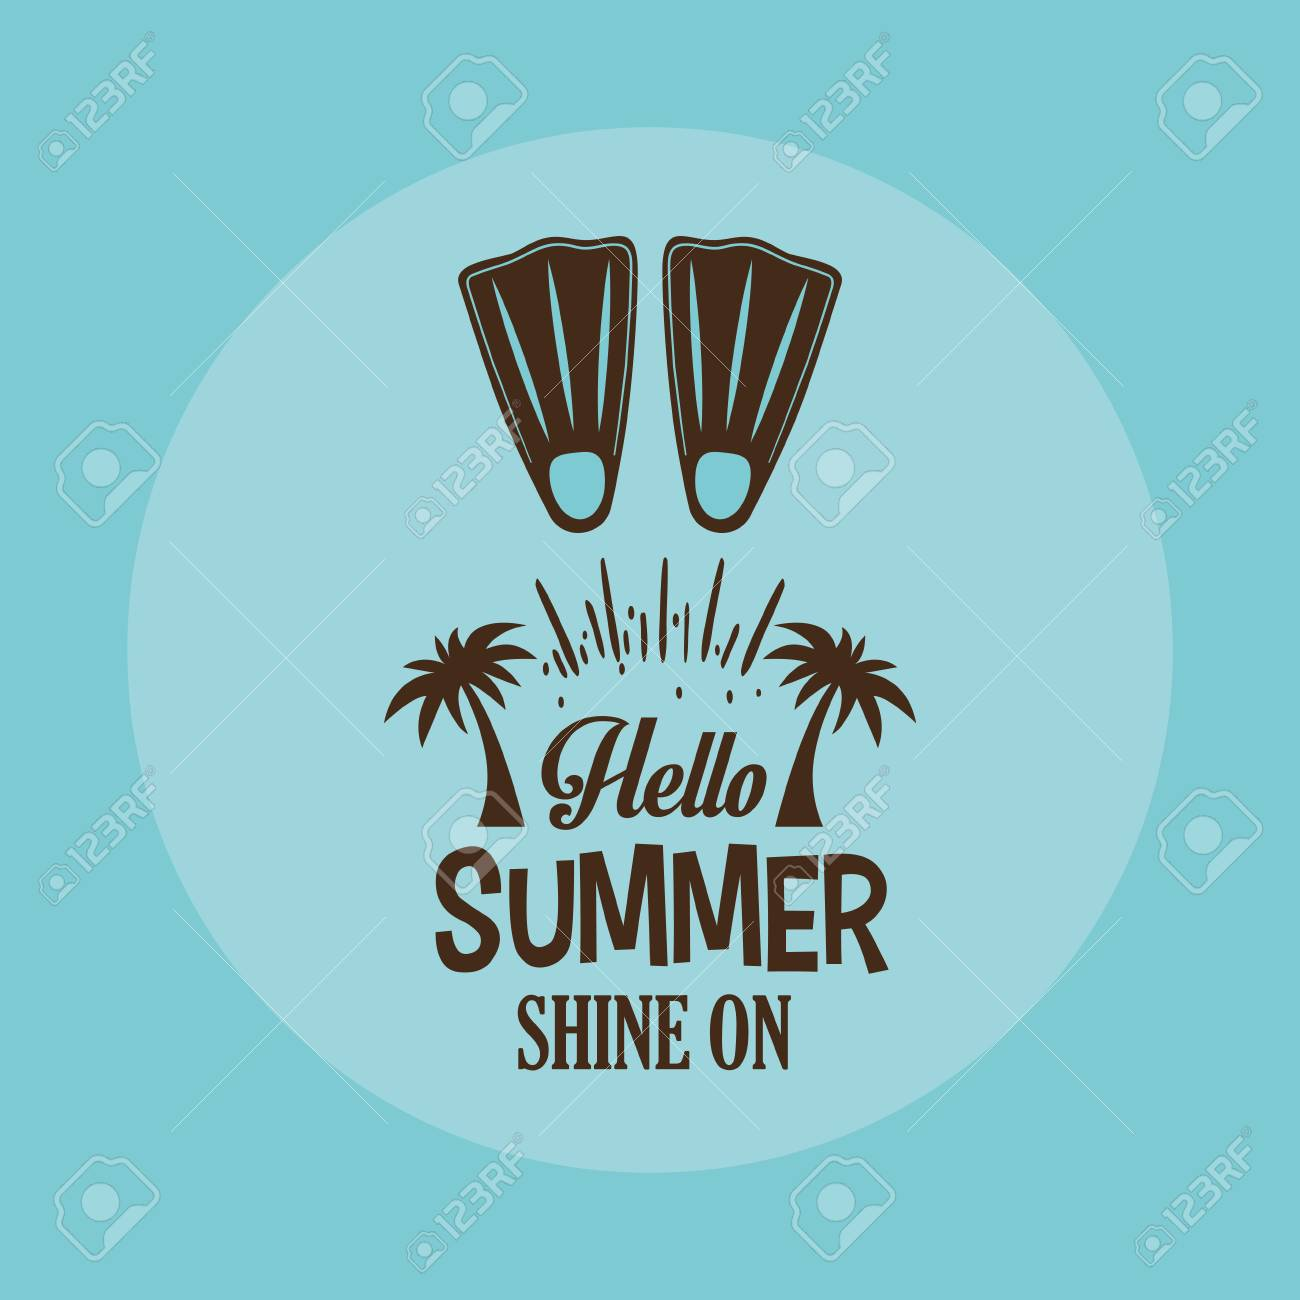 Hello Summer Card Shine One With Flippers Blue Background Vector  Illustration Eps 10 Stock Vector